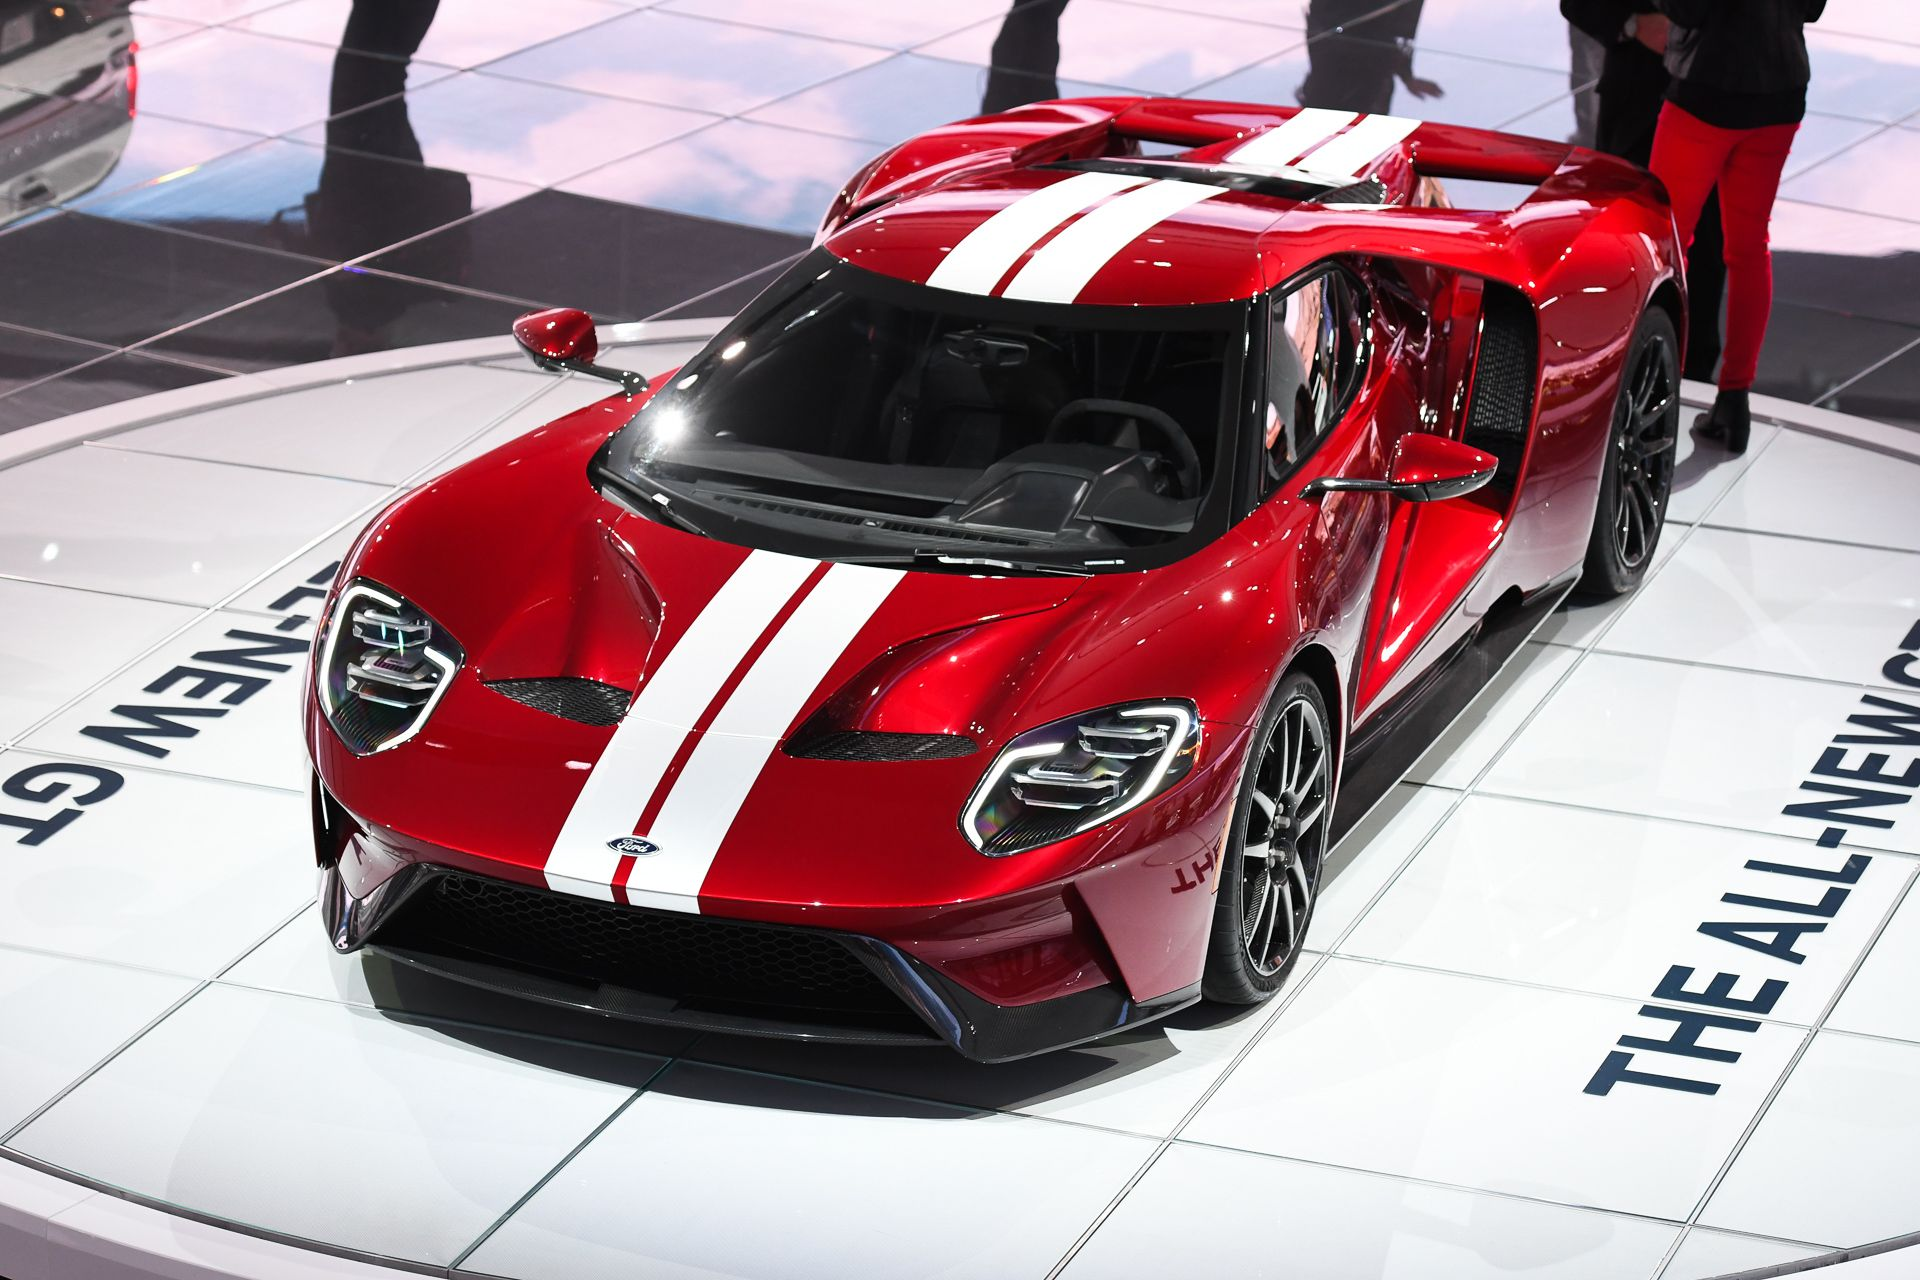 2017 Ford Gt Confirmed With 647 Hp 216 Mph Top Speed Ford Gt